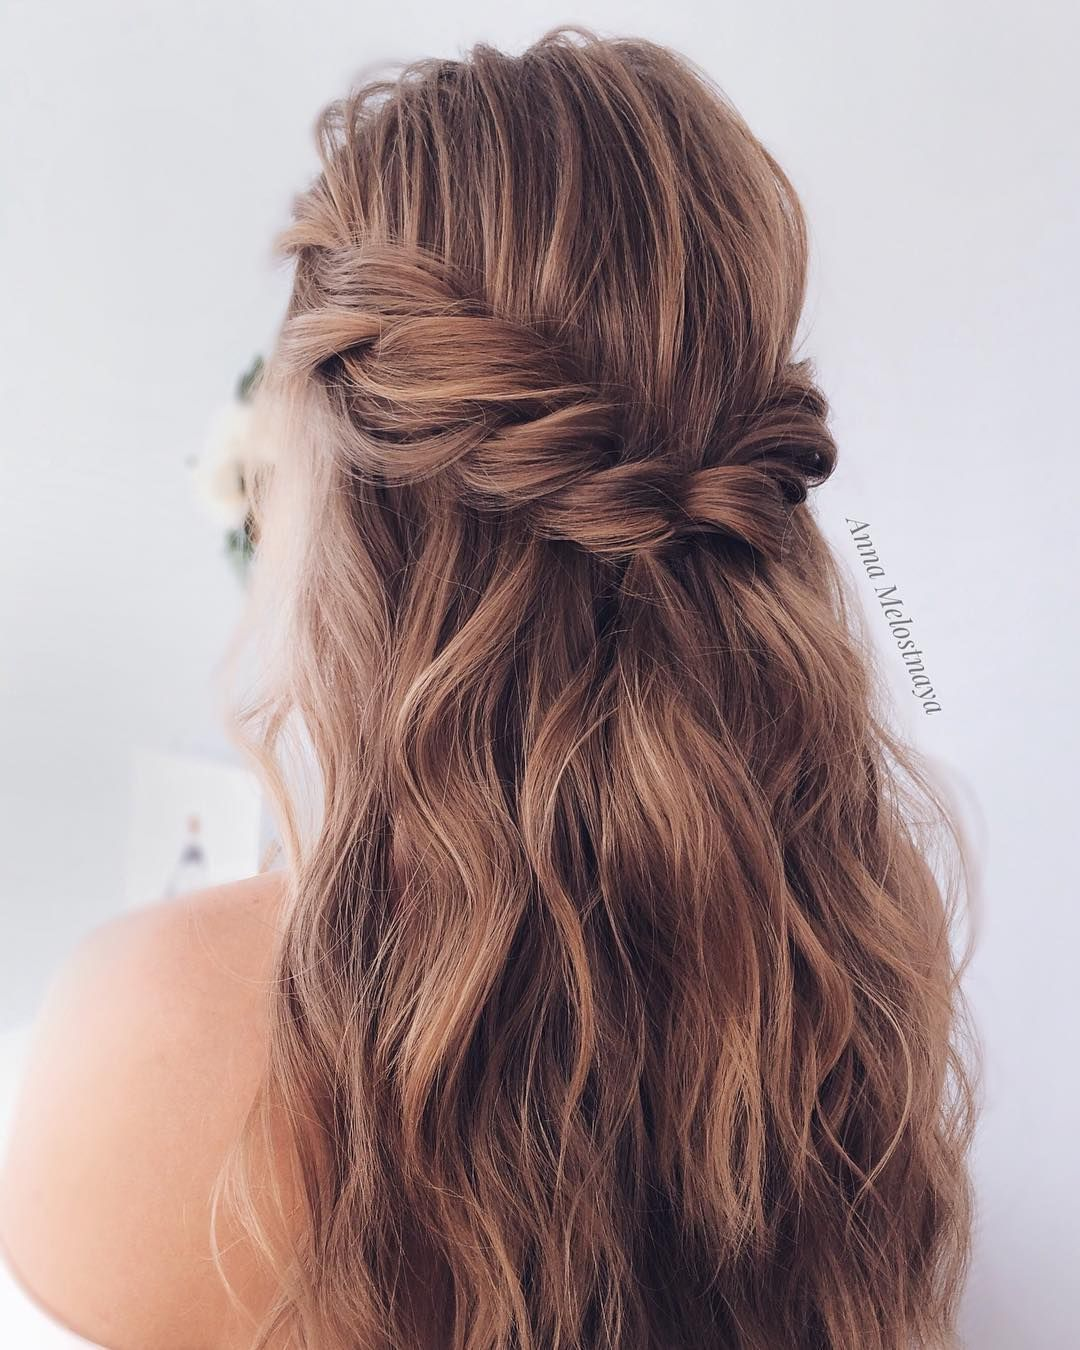 "Half up half down Wedding Hairstyle <a class=""pintag"" href=""/explore/bride/"" title=""#bride explore Pinterest"">#bride</a> <a class=""pintag"" href=""/explore/bridal/"" title=""#bridal explore Pinterest"">#bridal</a> <a class=""pintag"" href=""/explore/wedding/"" title=""#wedding explore Pinterest"">#wedding</a> <a class=""pintag"" href=""/explore/weddinghairstyles/"" title=""#weddinghairstyles explore Pinterest"">#weddinghairstyles</a> <a class=""pintag"" href=""/explore/hirstyles/"" title=""#hirstyles explore Pinterest"">#hirstyles</a><p><a href=""http://www.homeinteriordesign.org/2018/02/short-guide-to-interior-decoration.html"">Short guide to interior decoration</a></p>"